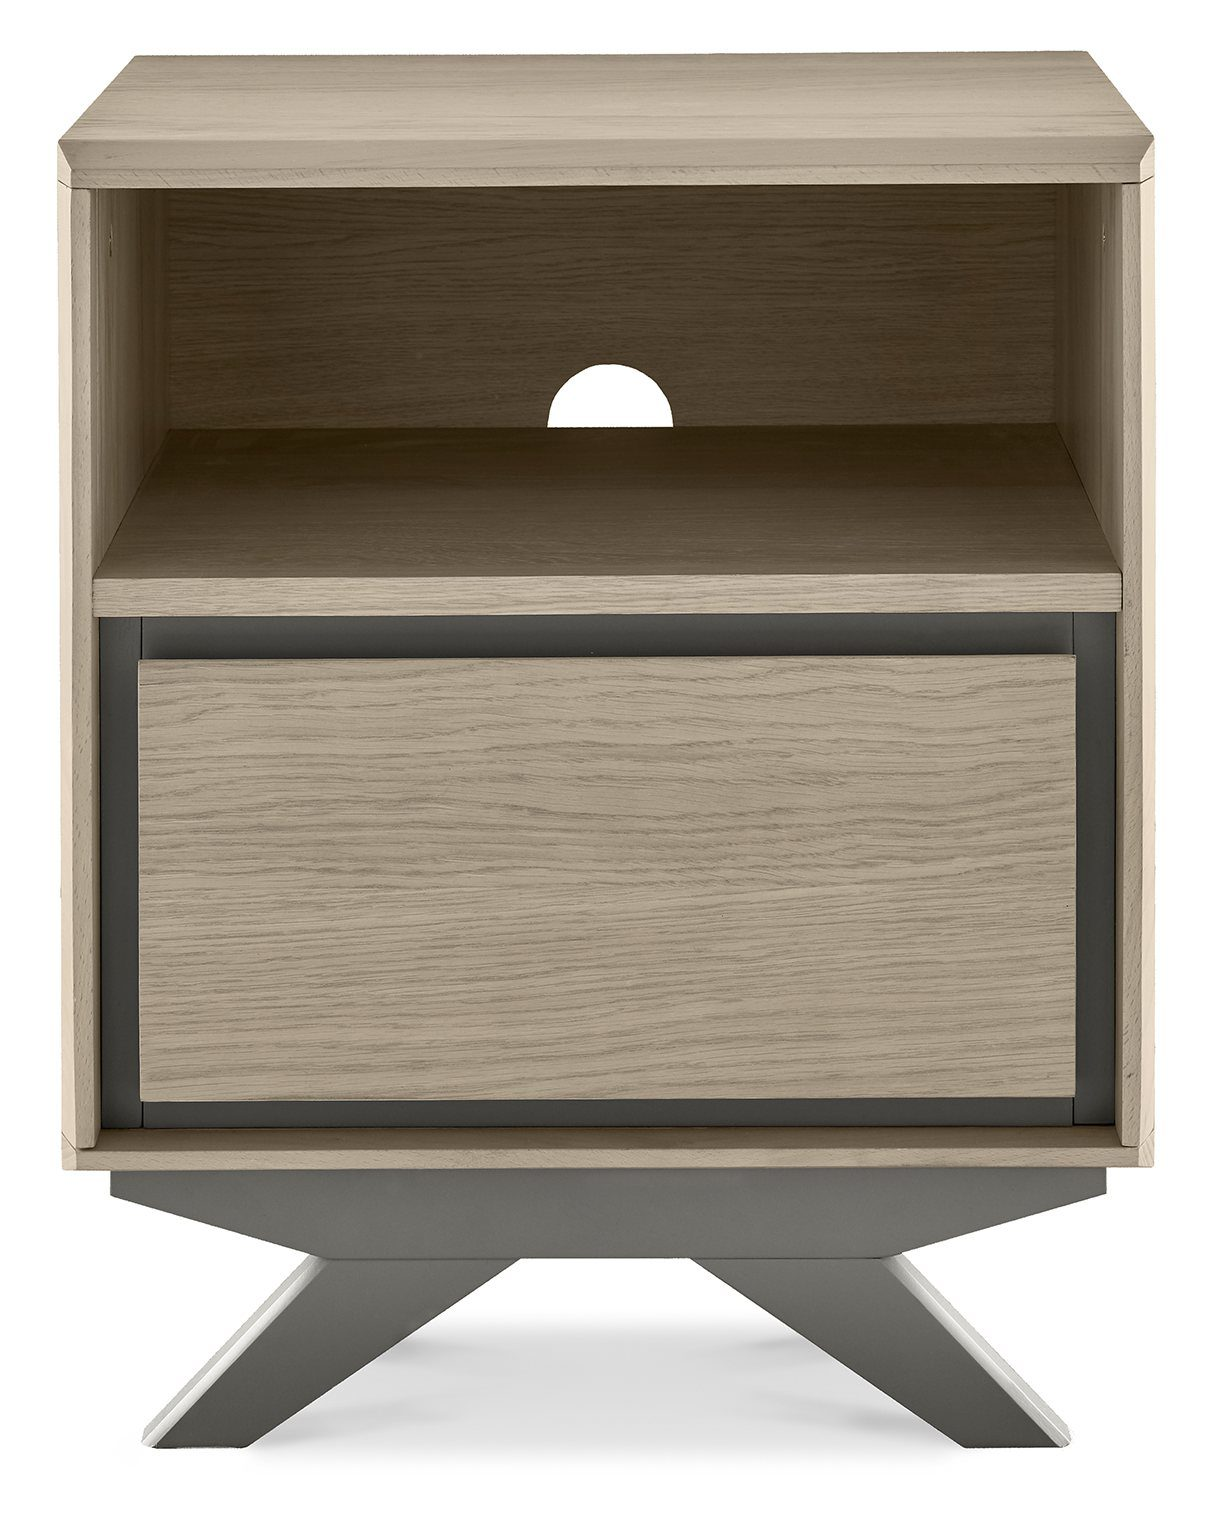 Buy The Brunel 1 Drawer Nightstand Belgica Furniture